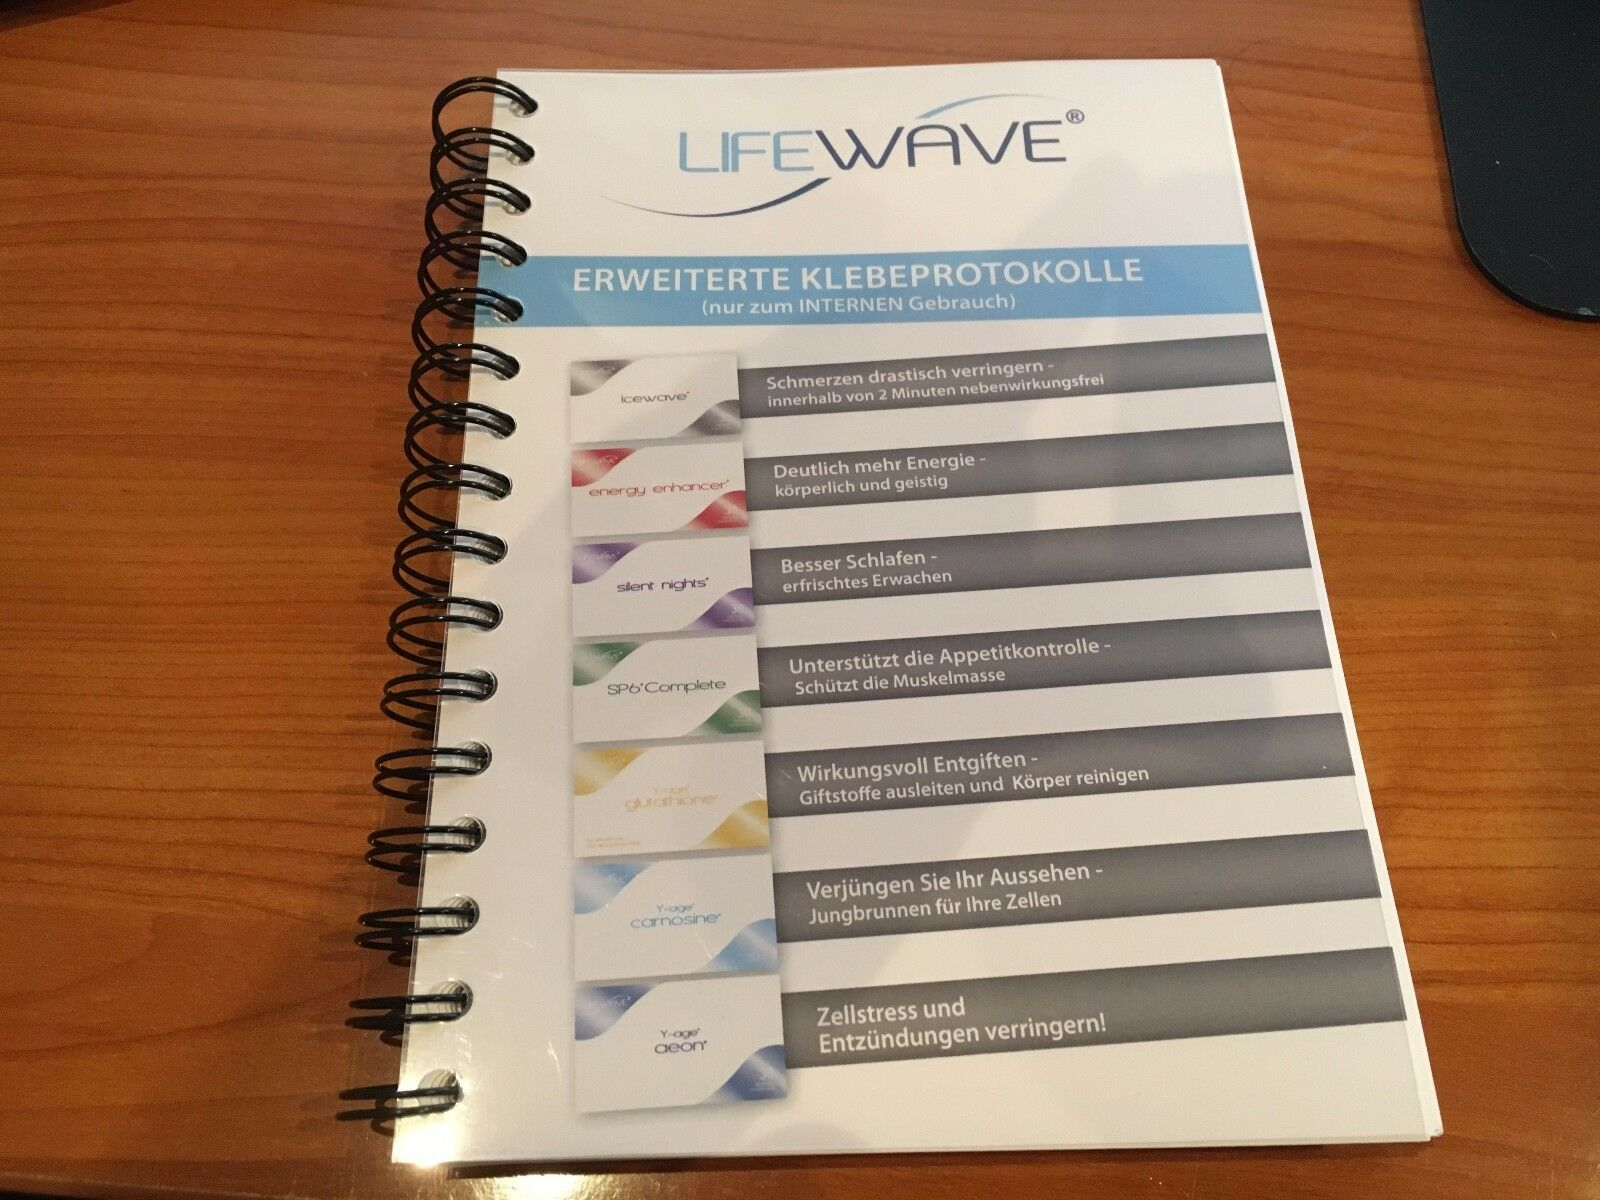 Erweitertes Klebeprotokoll A5 - LifeWave Phototherapiepflaster Lifewave Patches